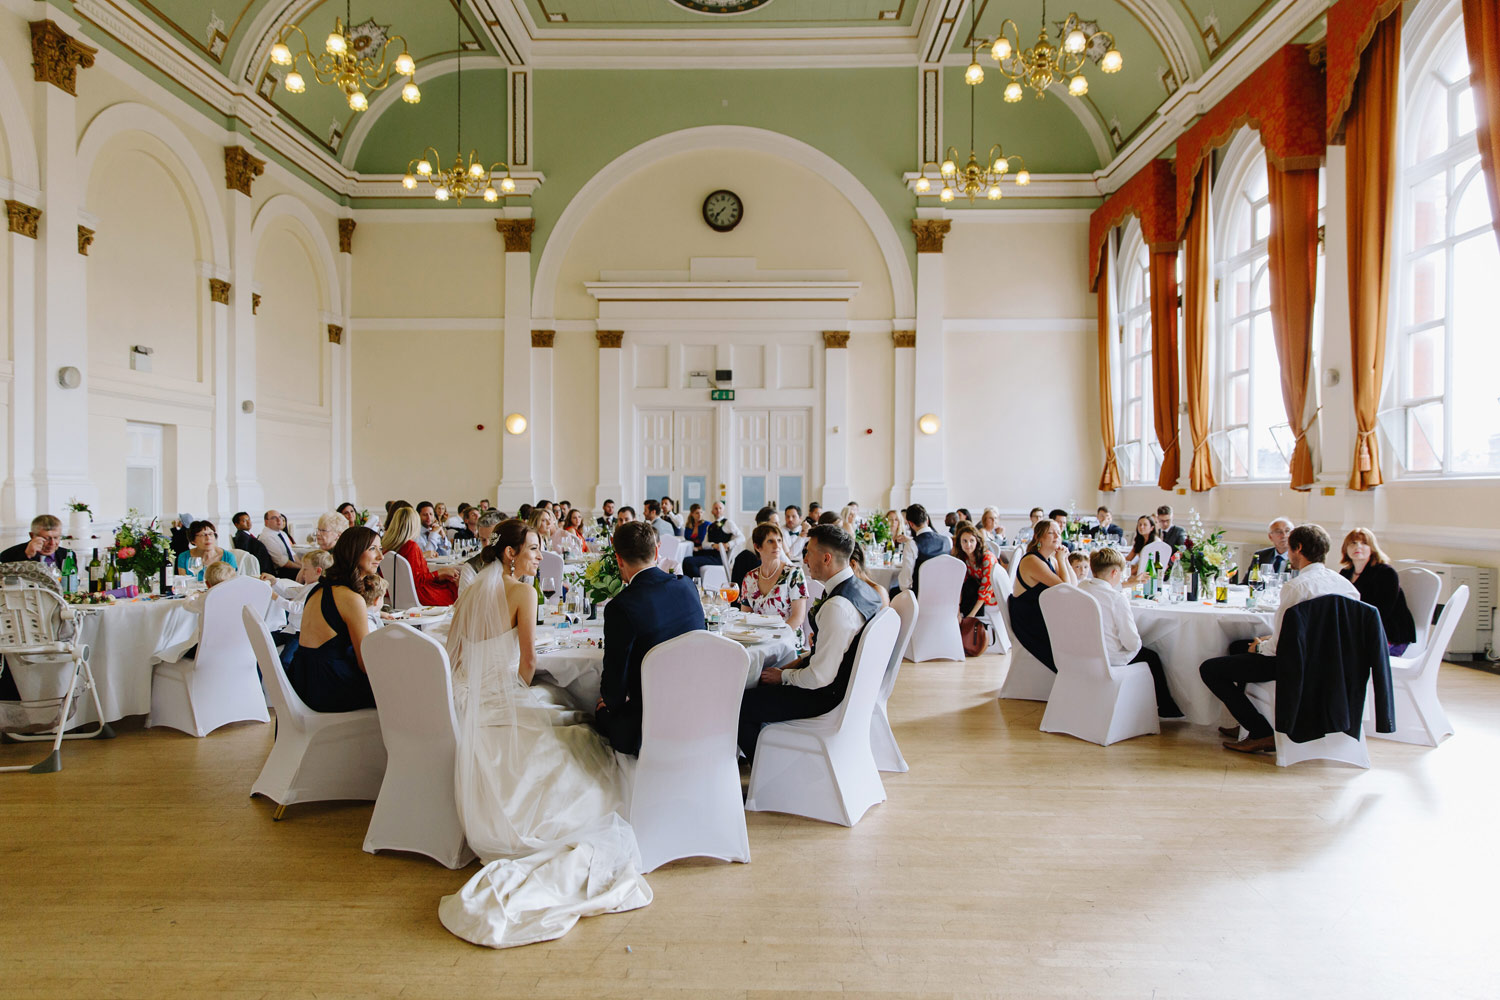 A wedding reception at Leyton Great Hall in East London.